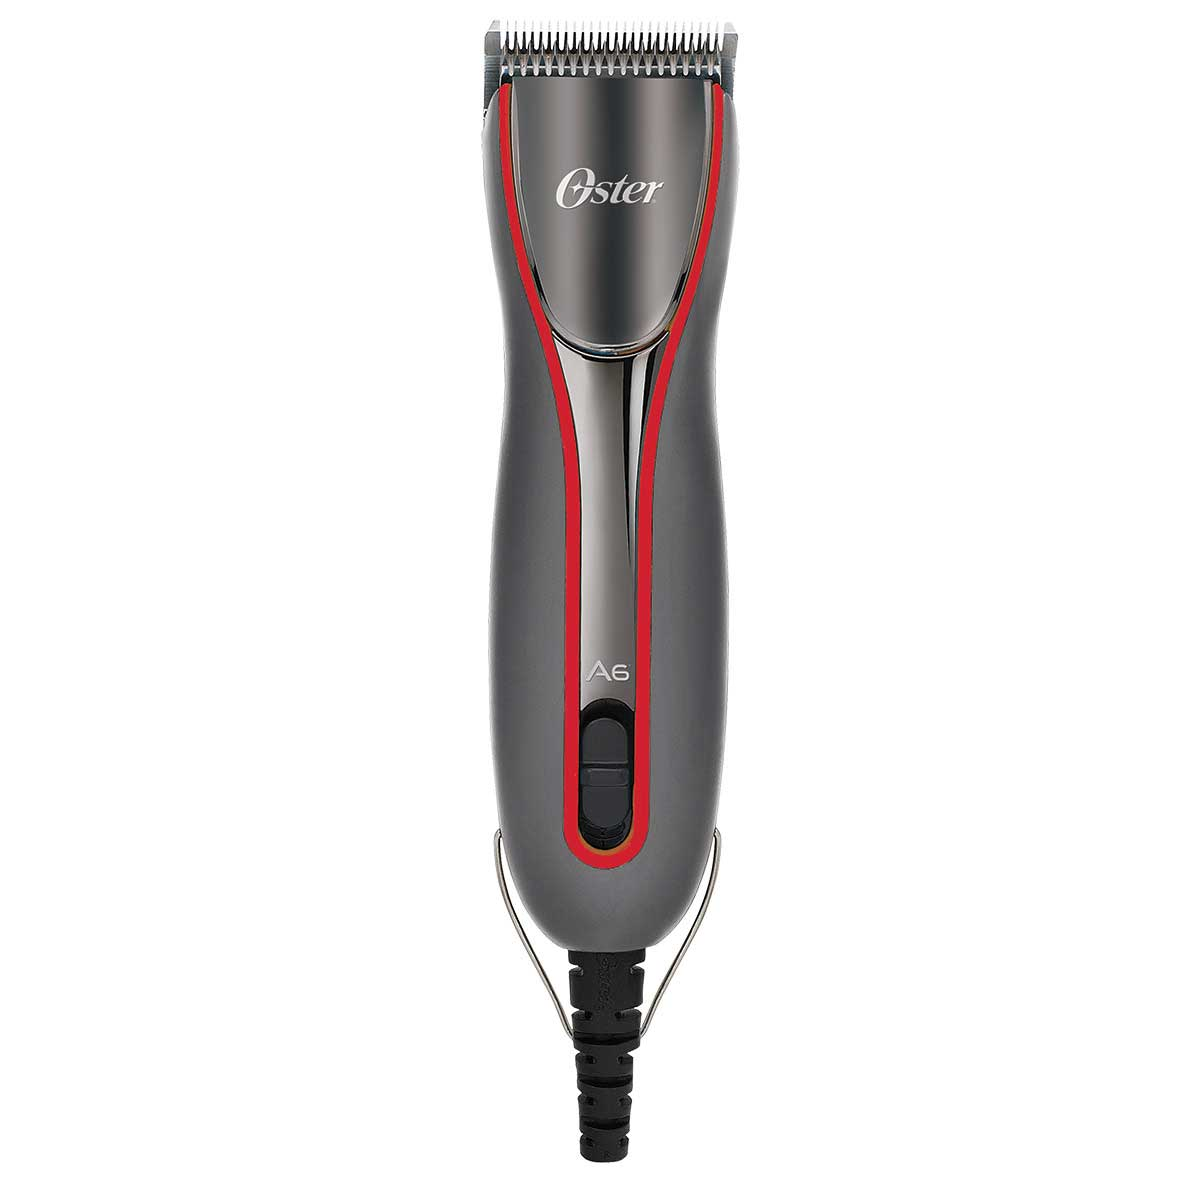 Oster A6 Cool Comfort Heavy Duty 3 Speed Red Rocket Clipper with 10 Blade